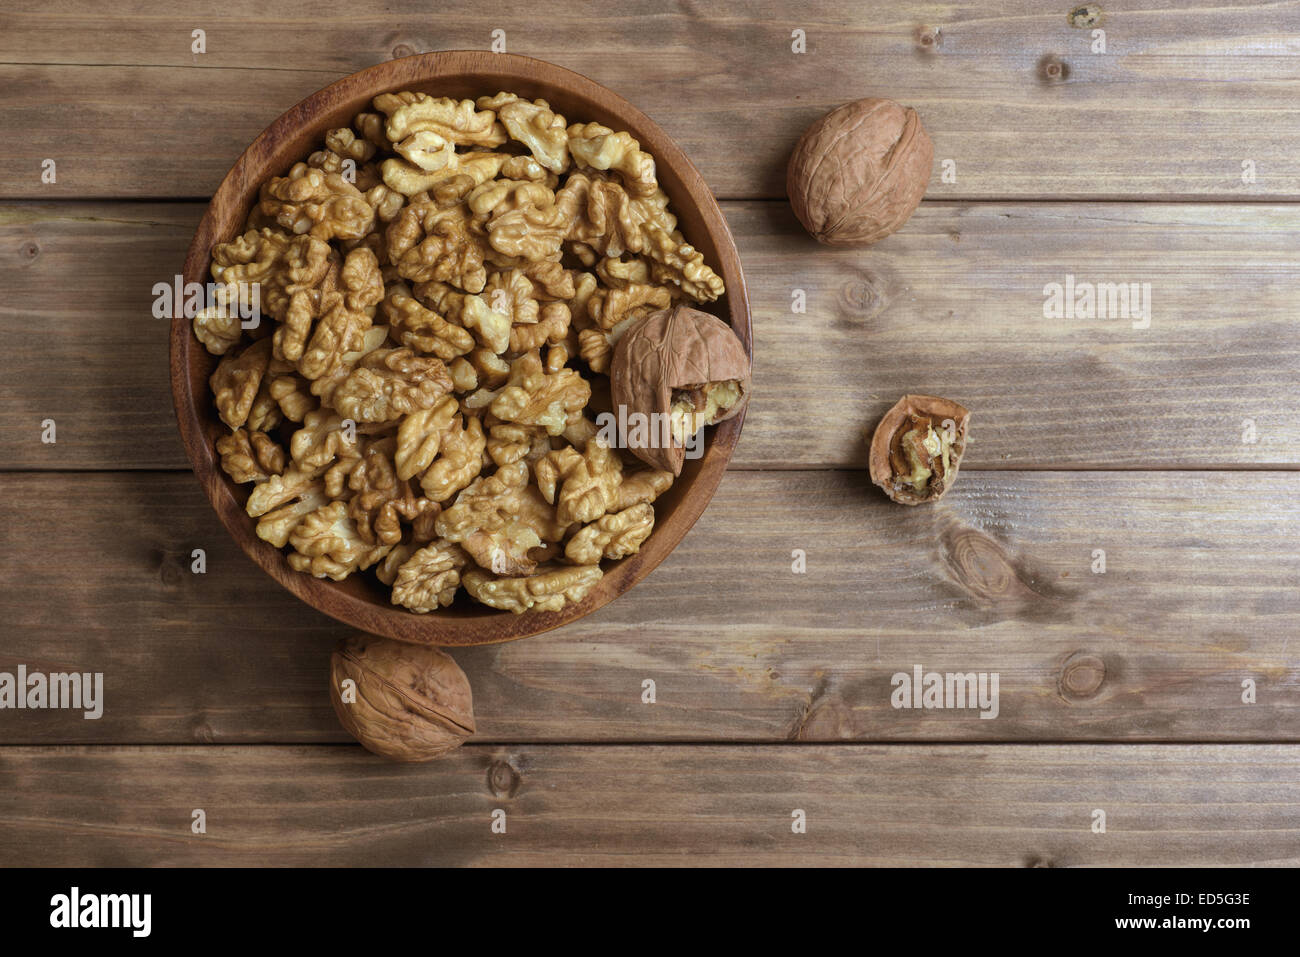 Walnuts in wooden bowl on wooden table - Stock Image